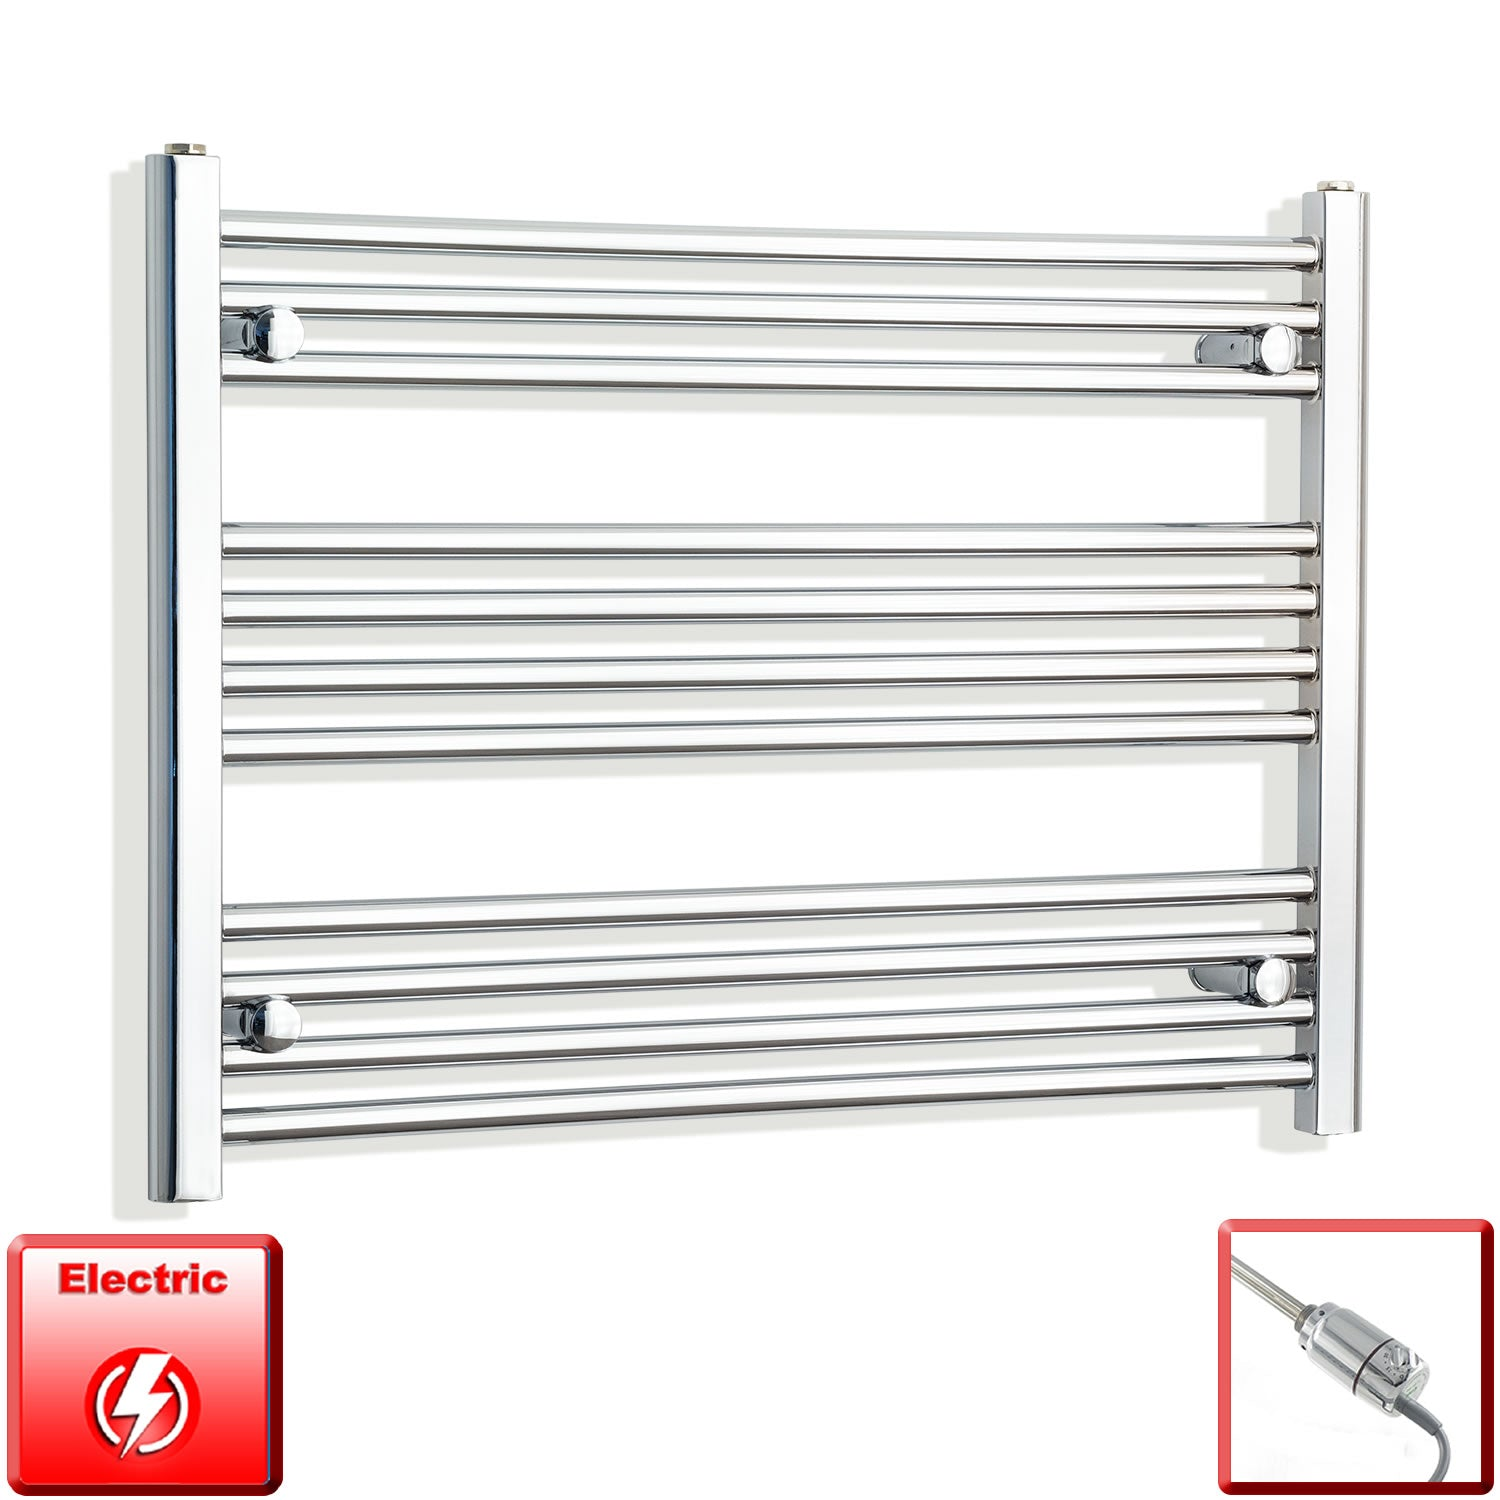 750mm Wide 600mm High Flat Or Curved Chrome Pre-Filled Electric Heated Towel Rail Radiator HTR,GT Thermostatic / Straight